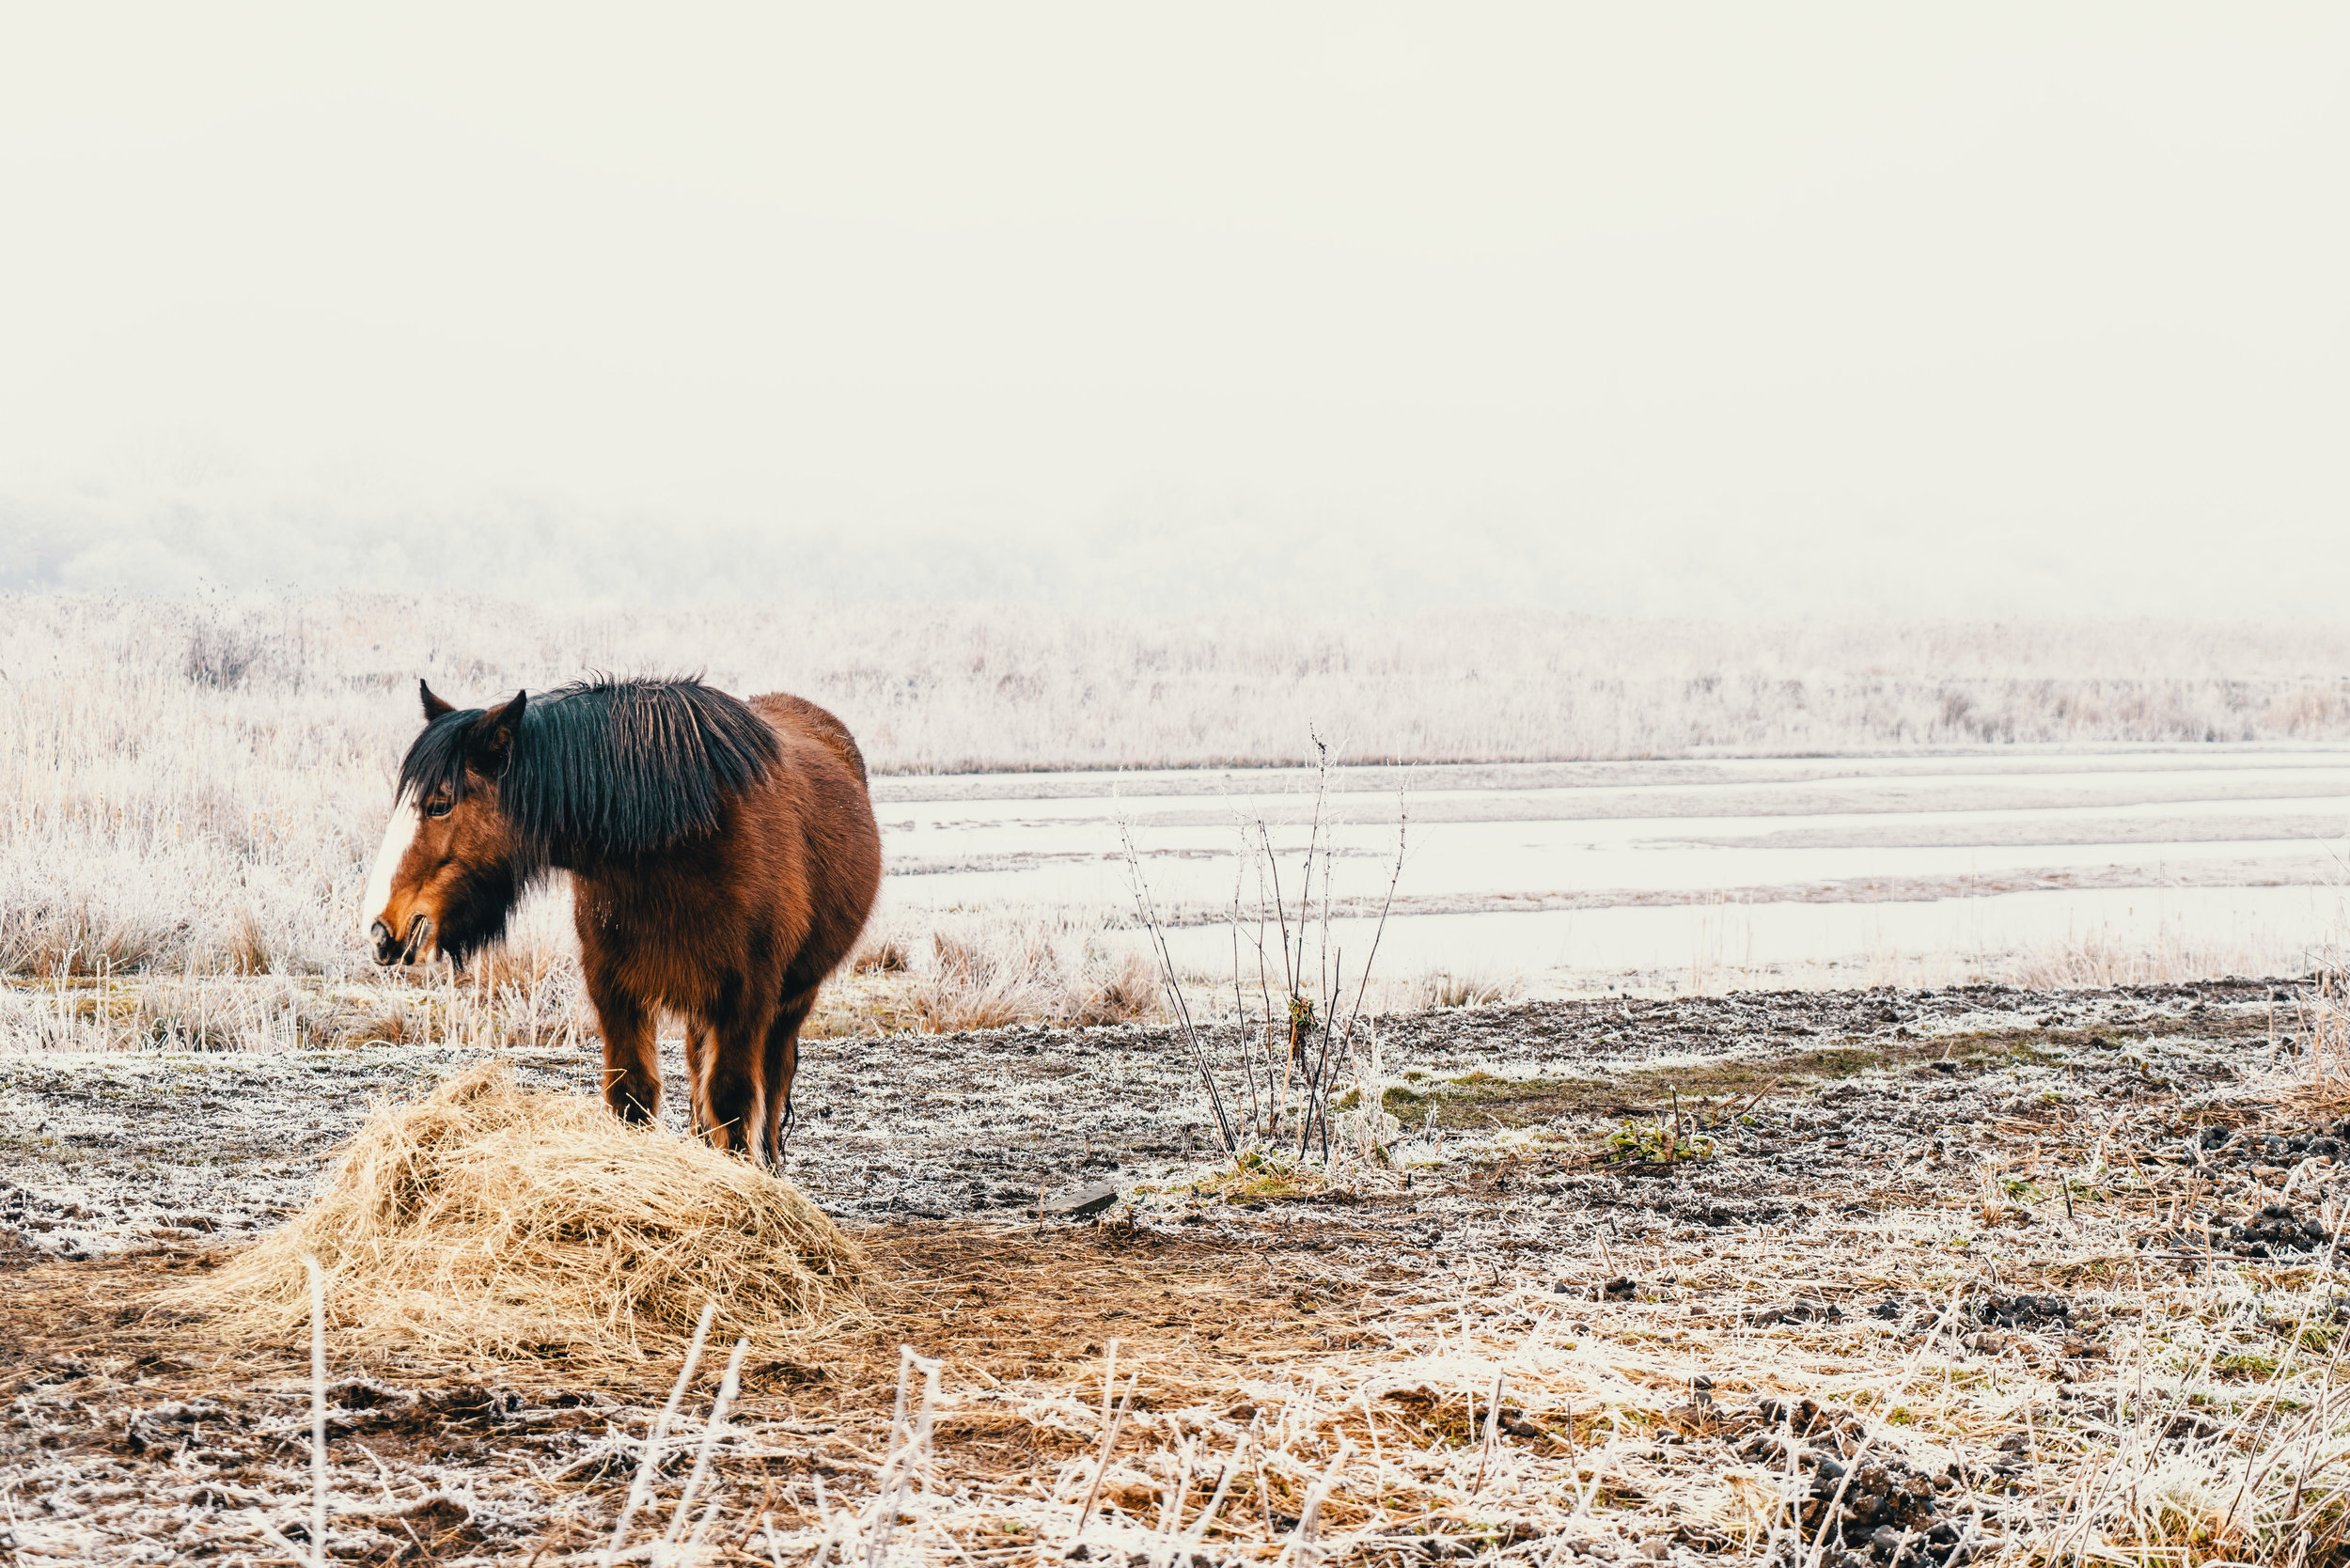 A Horse eating hay in the snow